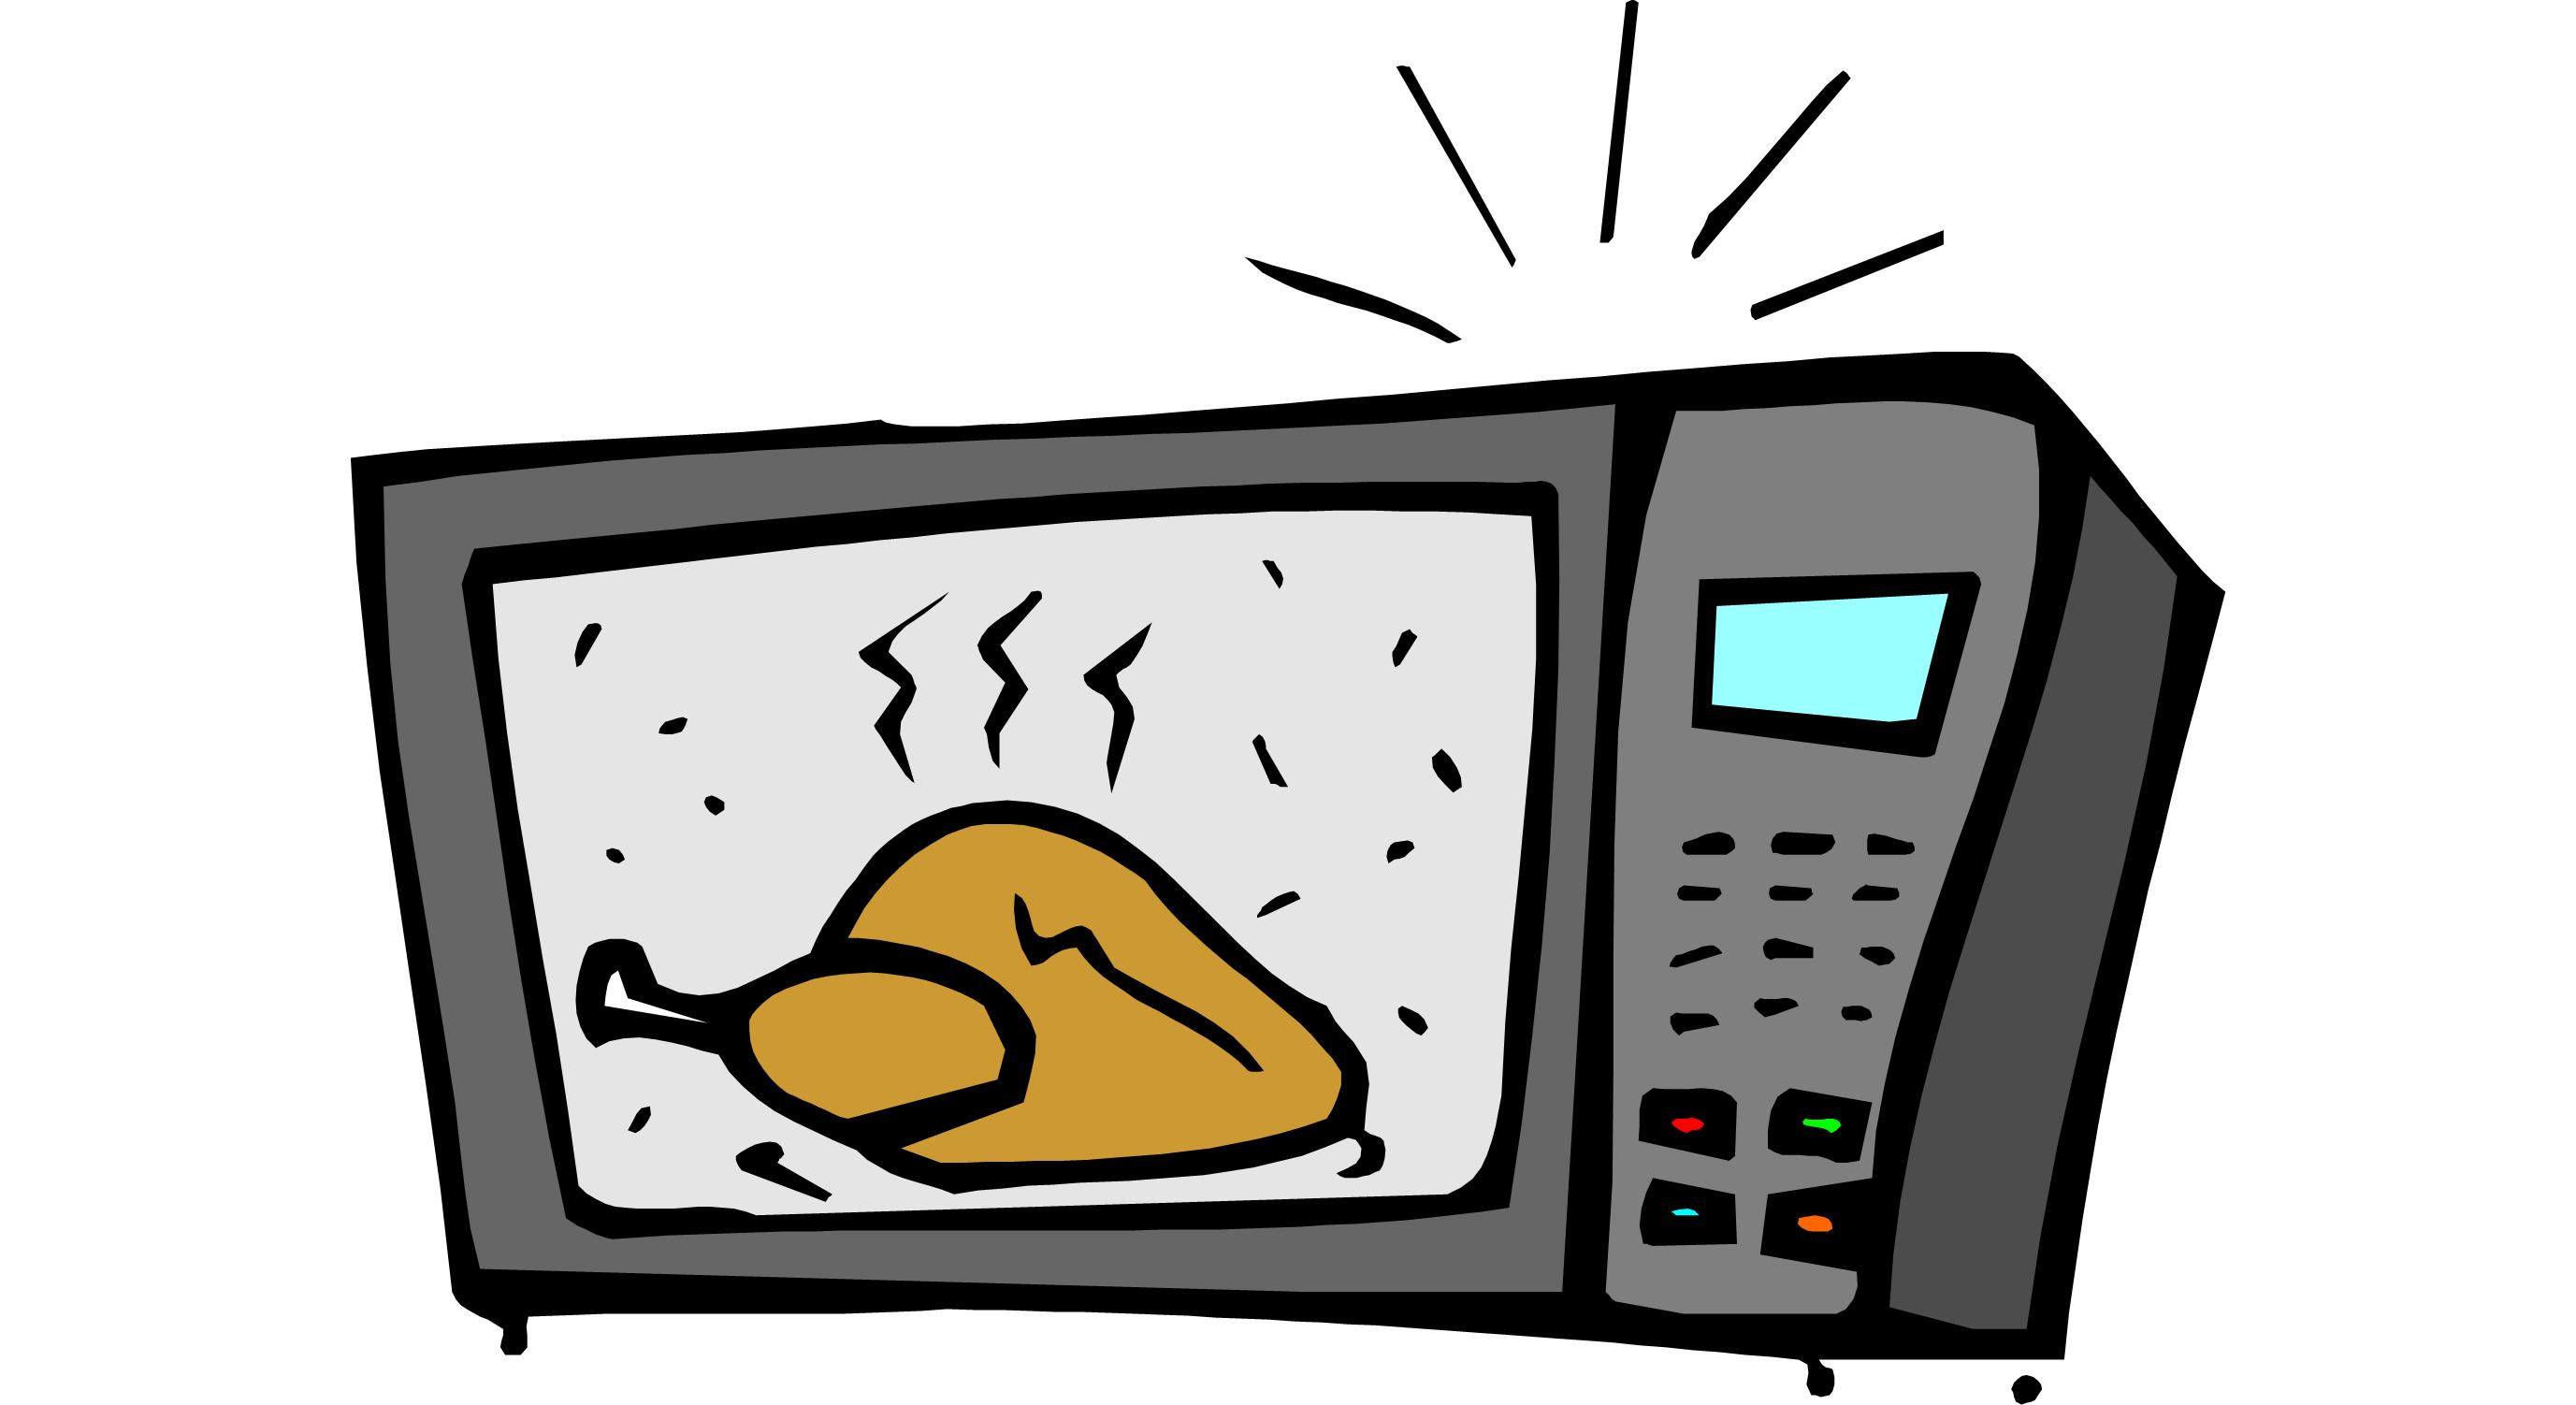 Free Microwave Oven Cliparts, Download Free Clip Art, Free.